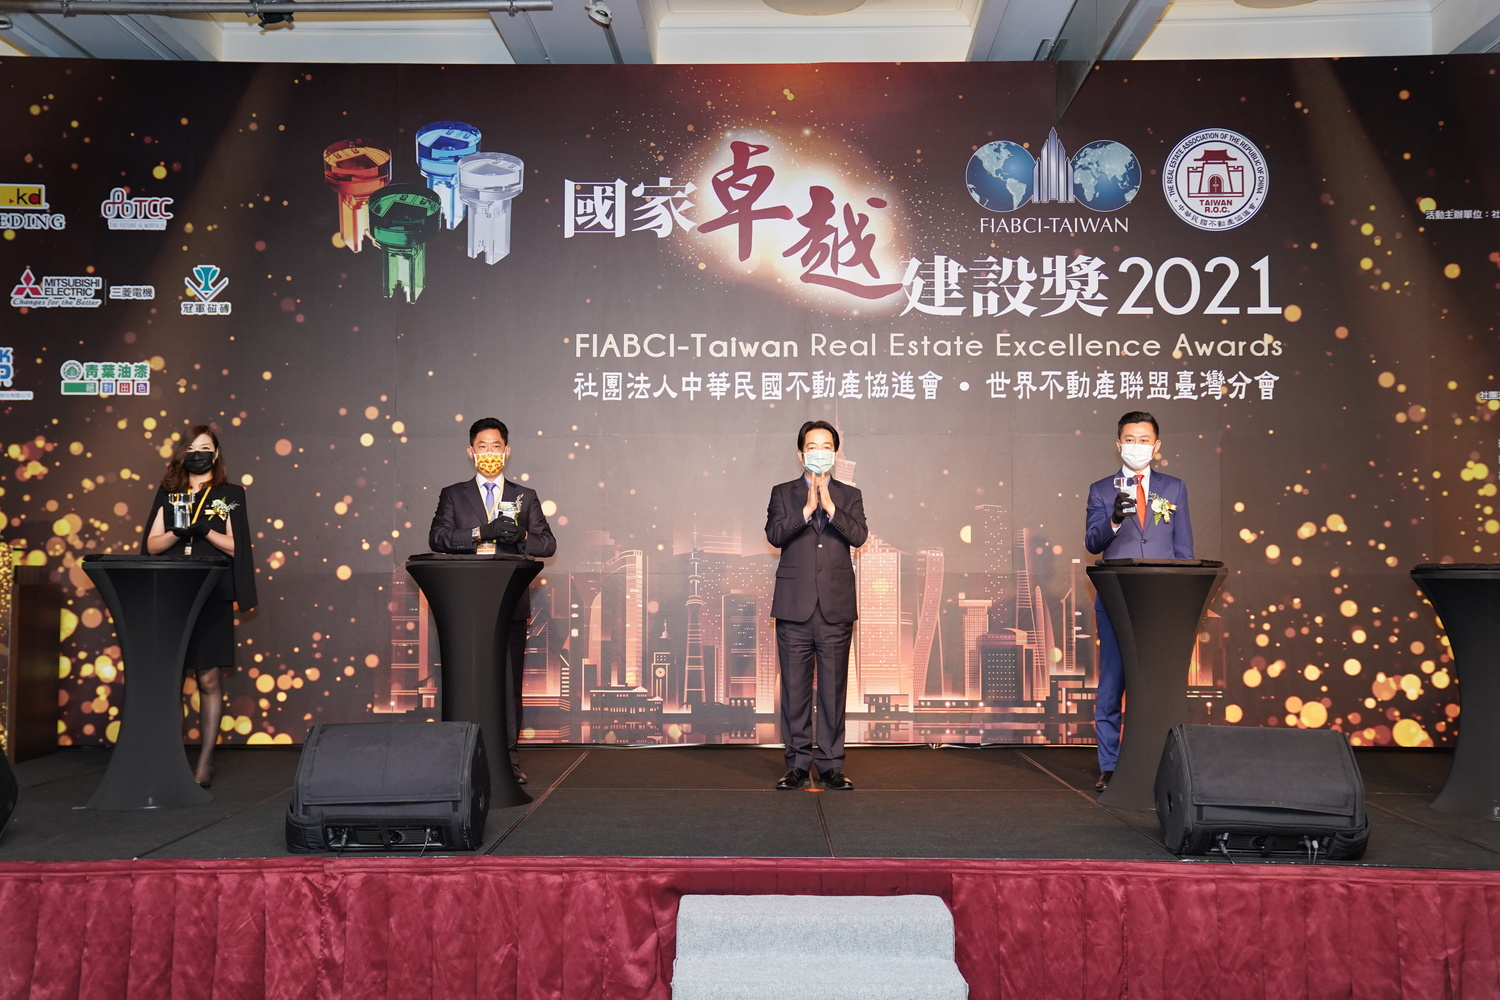 FIABCI-Taiwan Hosts 2021 Chapter Award Ceremony amid the Pandemic